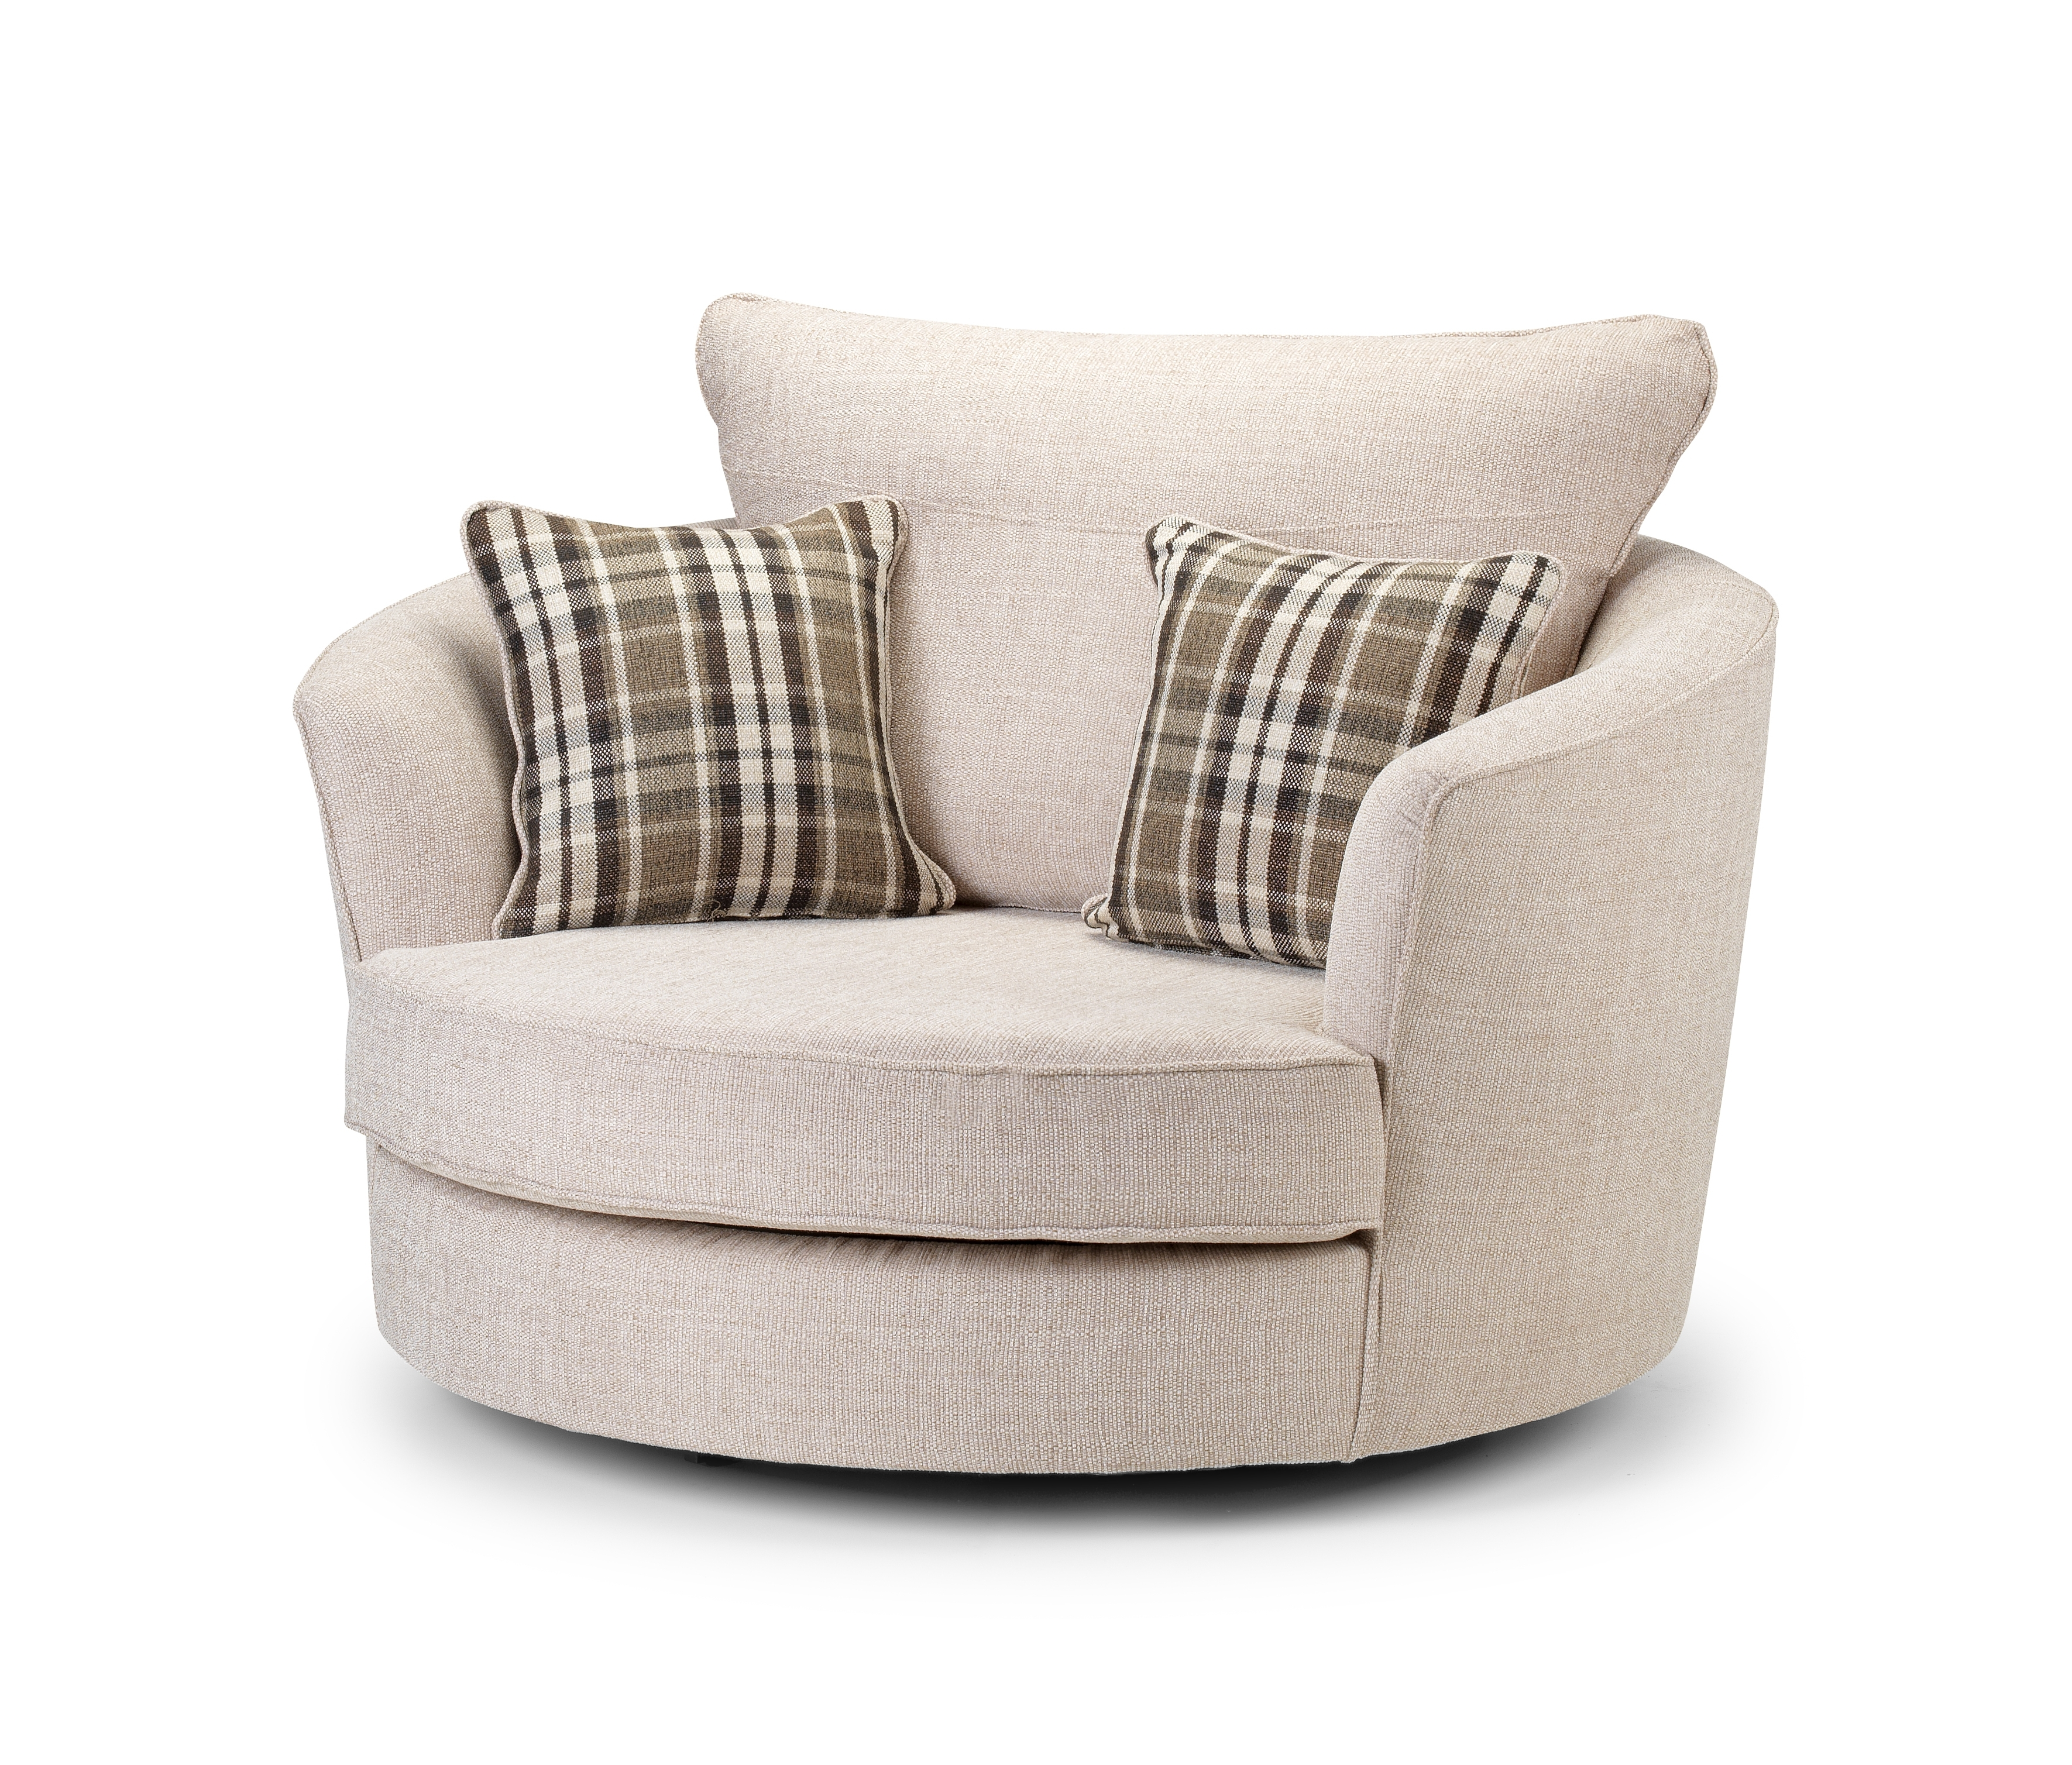 Well Liked Mini Sofas For Sofas : Round Sofa Bed Mini Couch Round Couch Bed Grey Sofa Set (View 16 of 20)